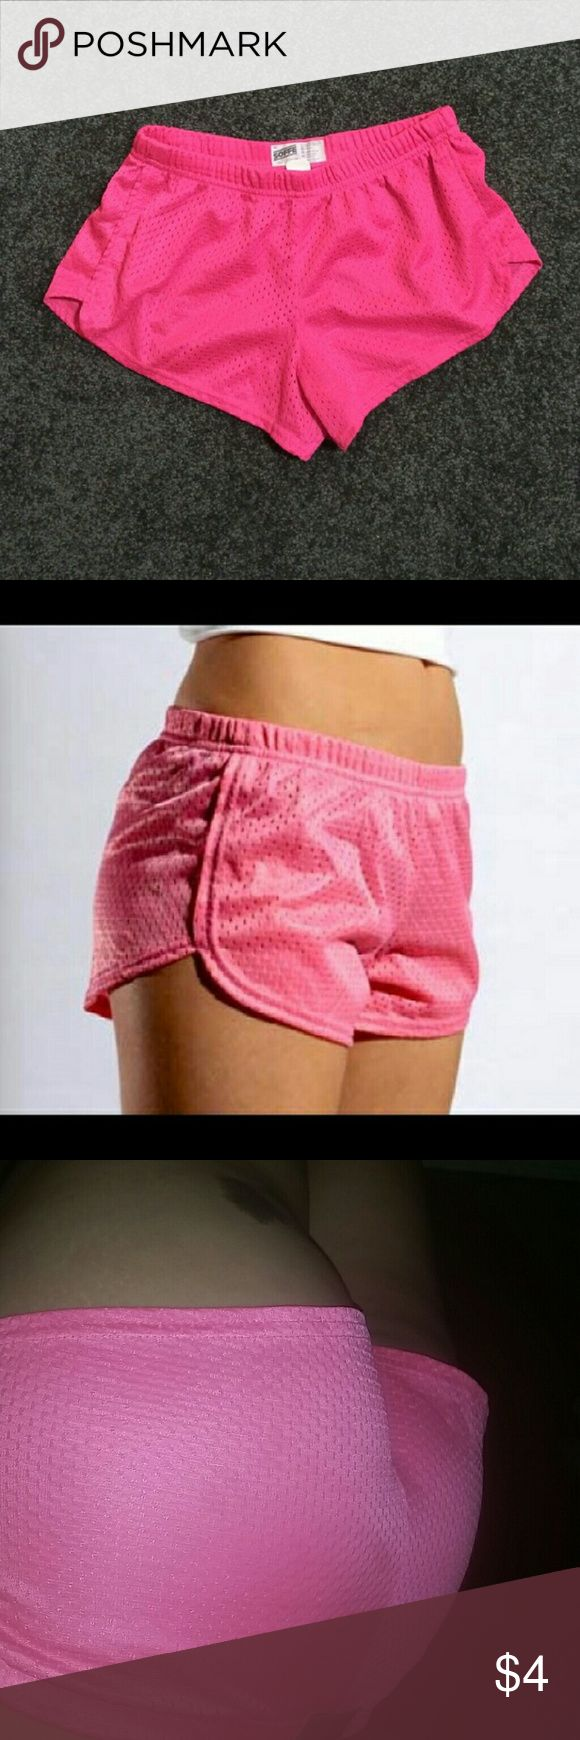 Hot pink shorts Hot pink shorts. Uses are for cheer practice, working out and anything else you want them for.   Used maybe 3?'s MAX. Too small for me.   Size is a small but fits like a XS.  In good condition. Soffe Shorts